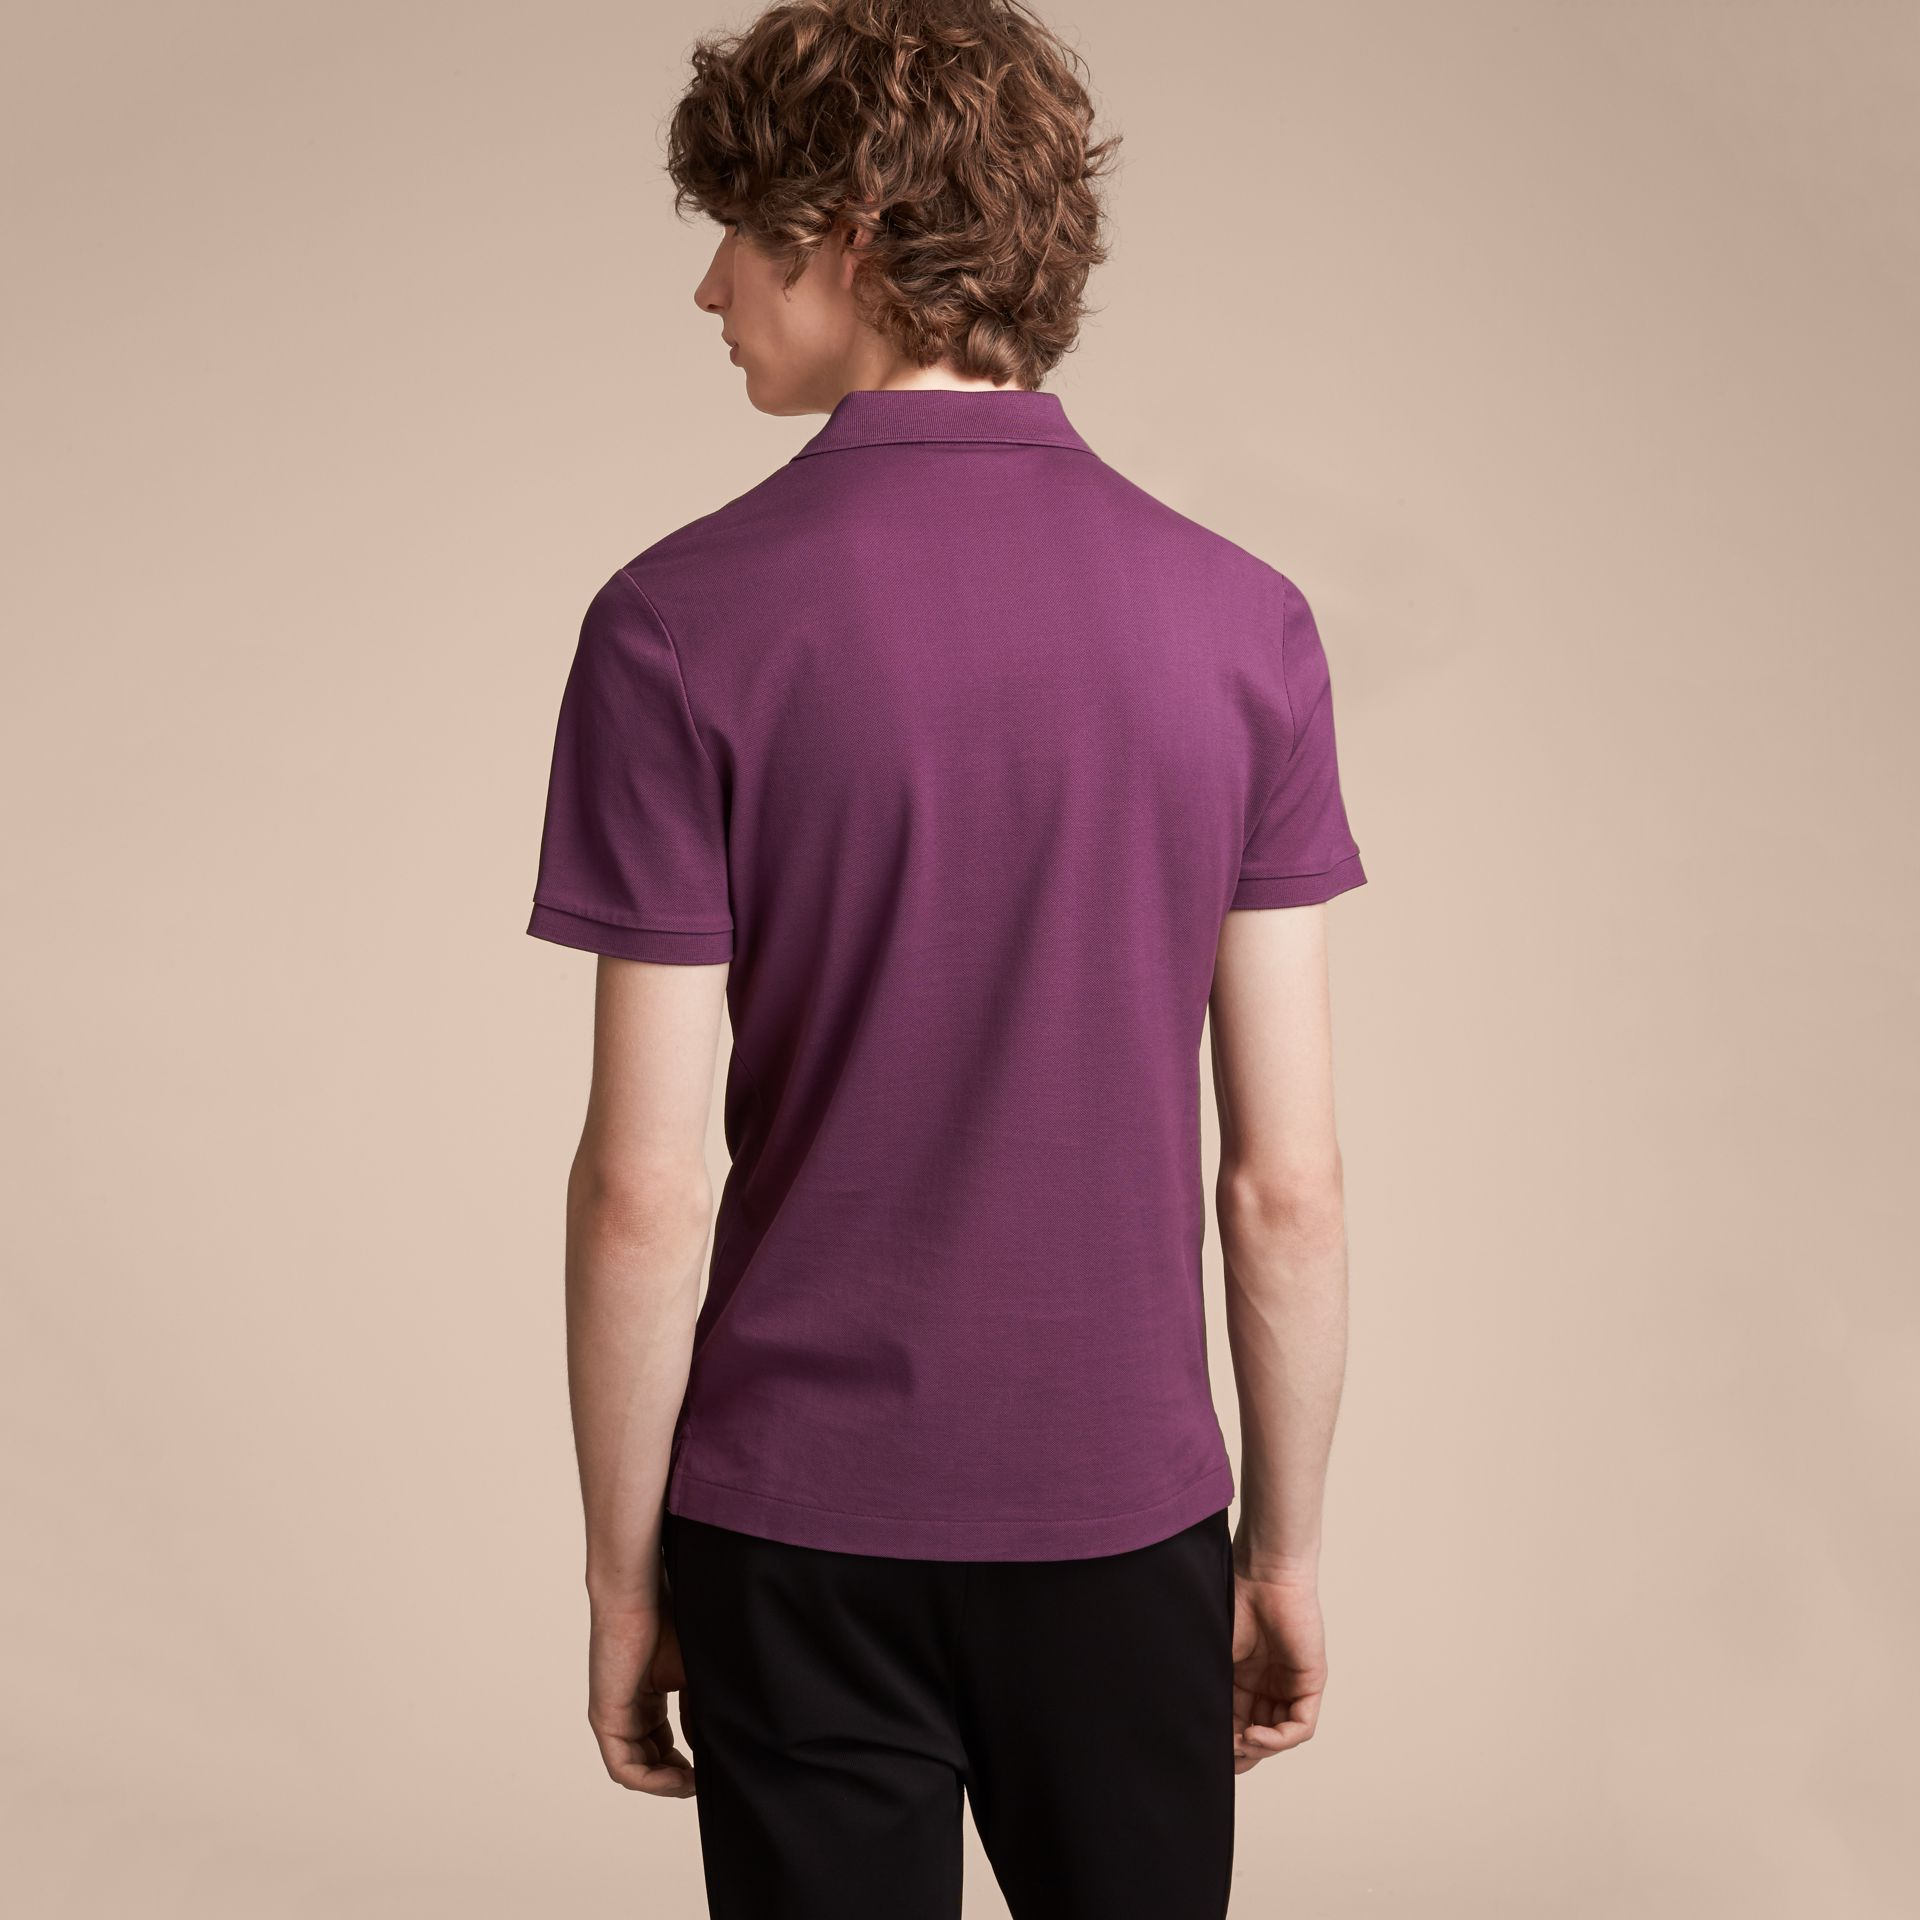 Cotton Piqué Polo Shirt in Heather - Men | Burberry Canada - gallery image 3